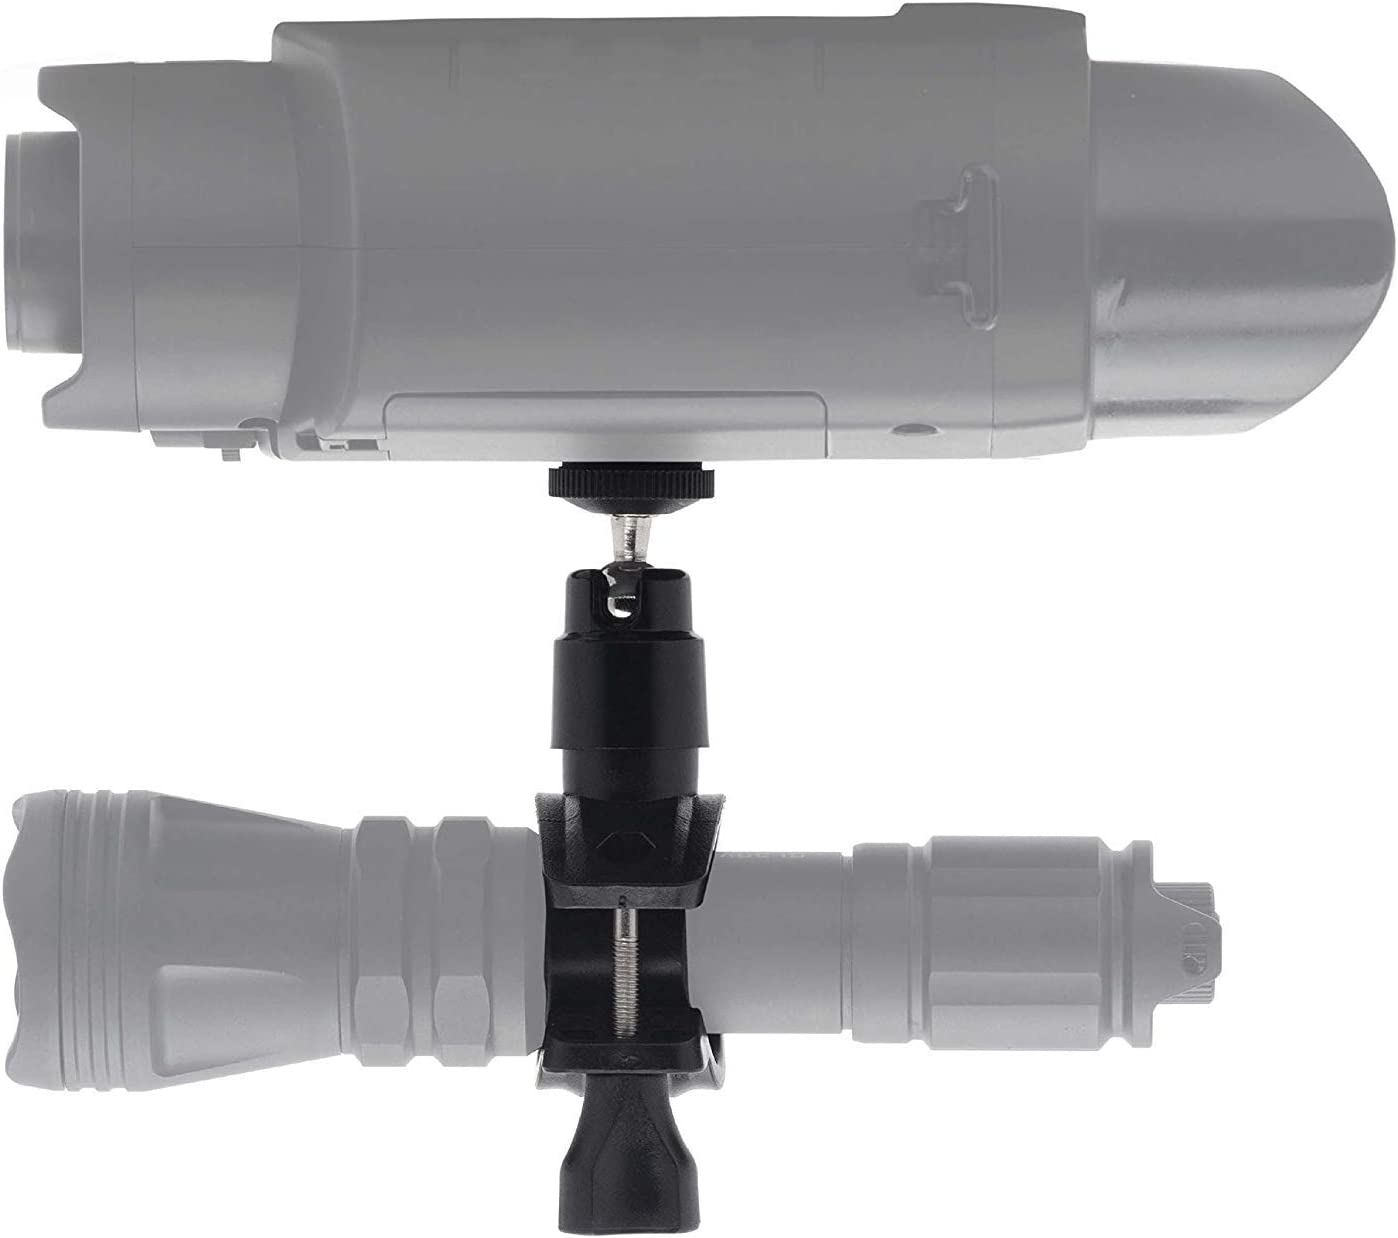 for Cameras and Night Vision Monoculars Nightfox Adjustable Torch Tripod Mount